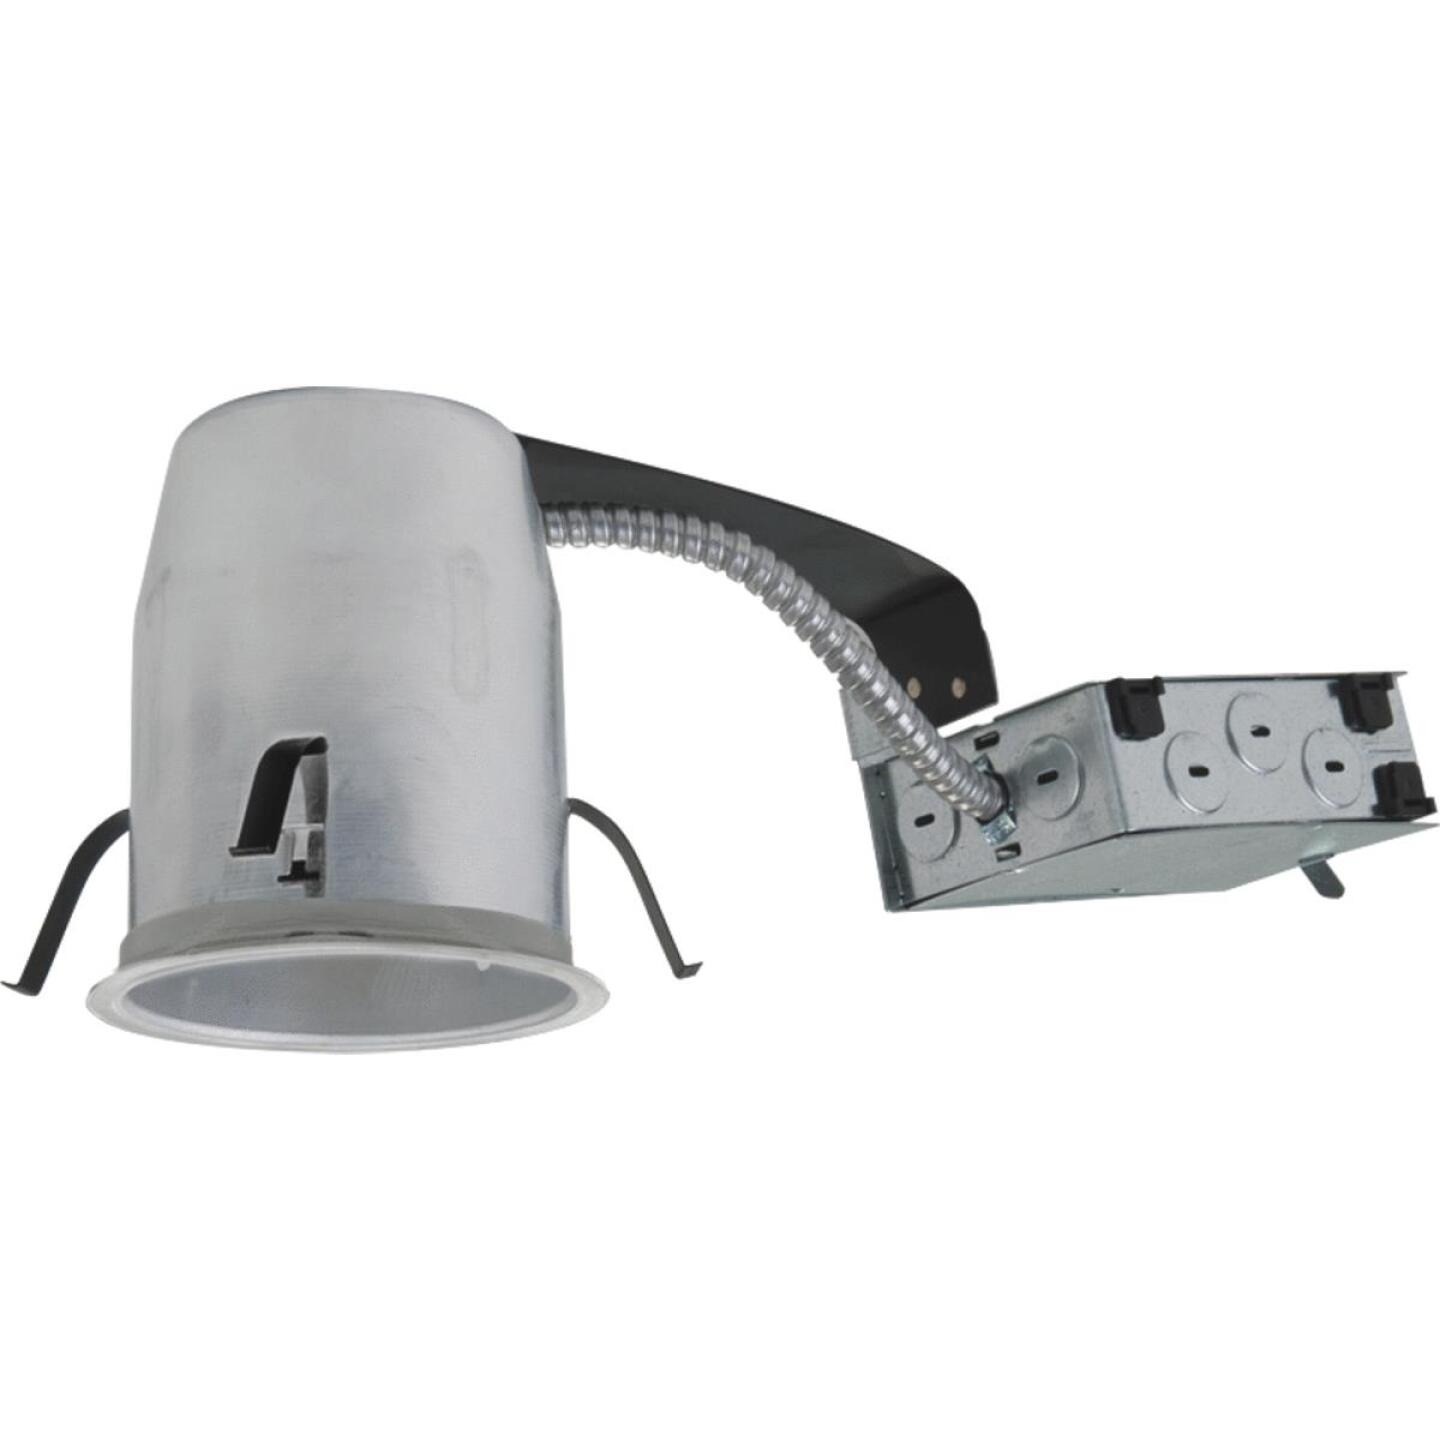 Halo Air-Tite 4 In. Remodel IC Rated LED Recessed Light Fixture Image 1